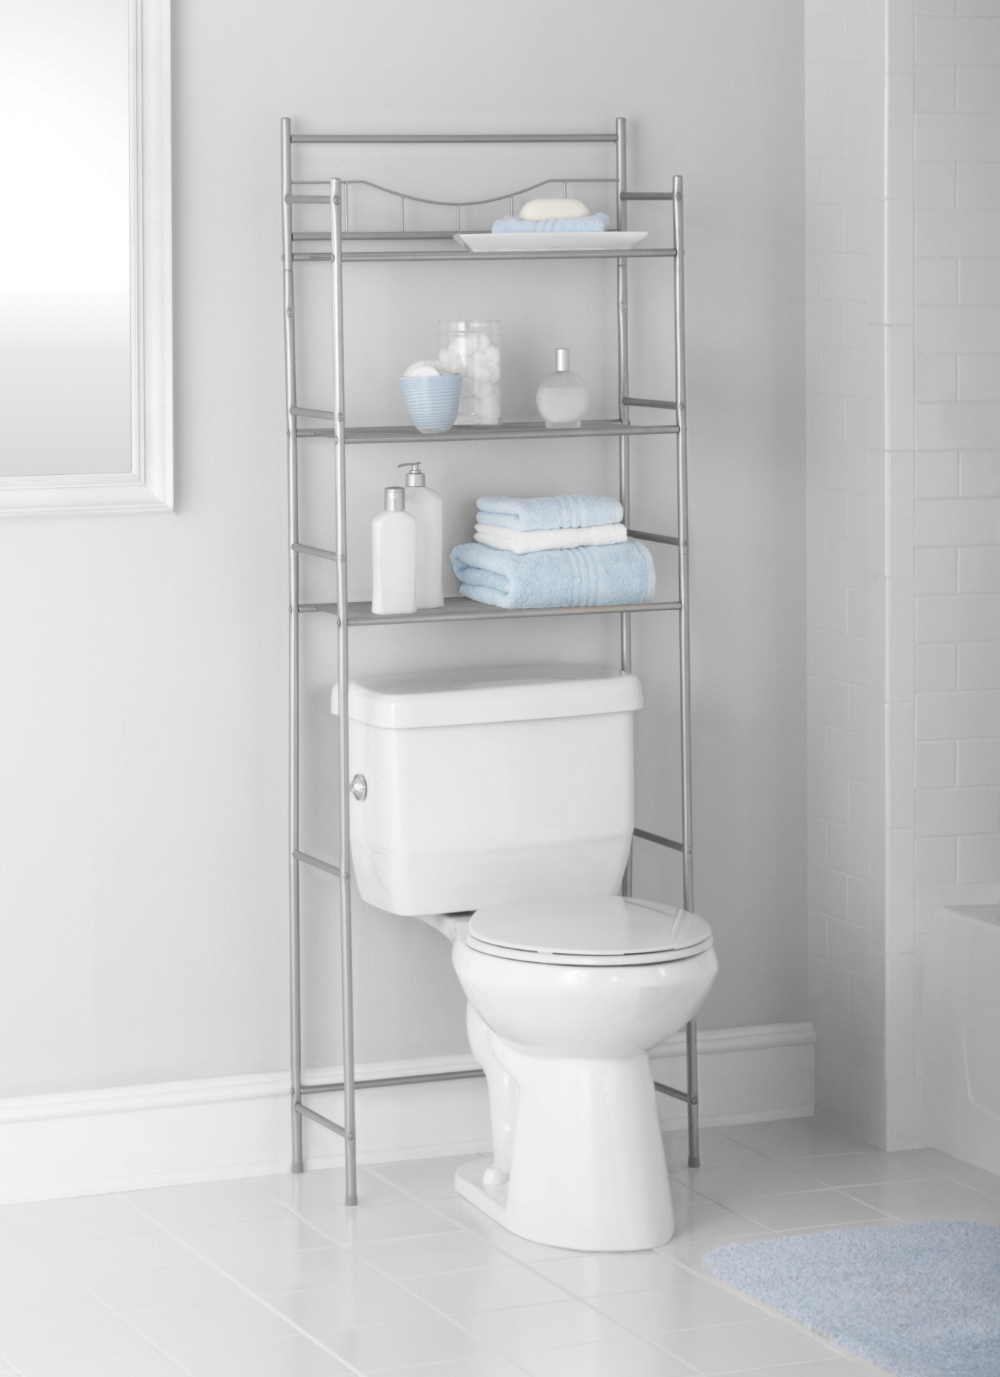 Home In 2020 Bathroom Space Saver Over The Toilet Rack Shelves Over Toilet